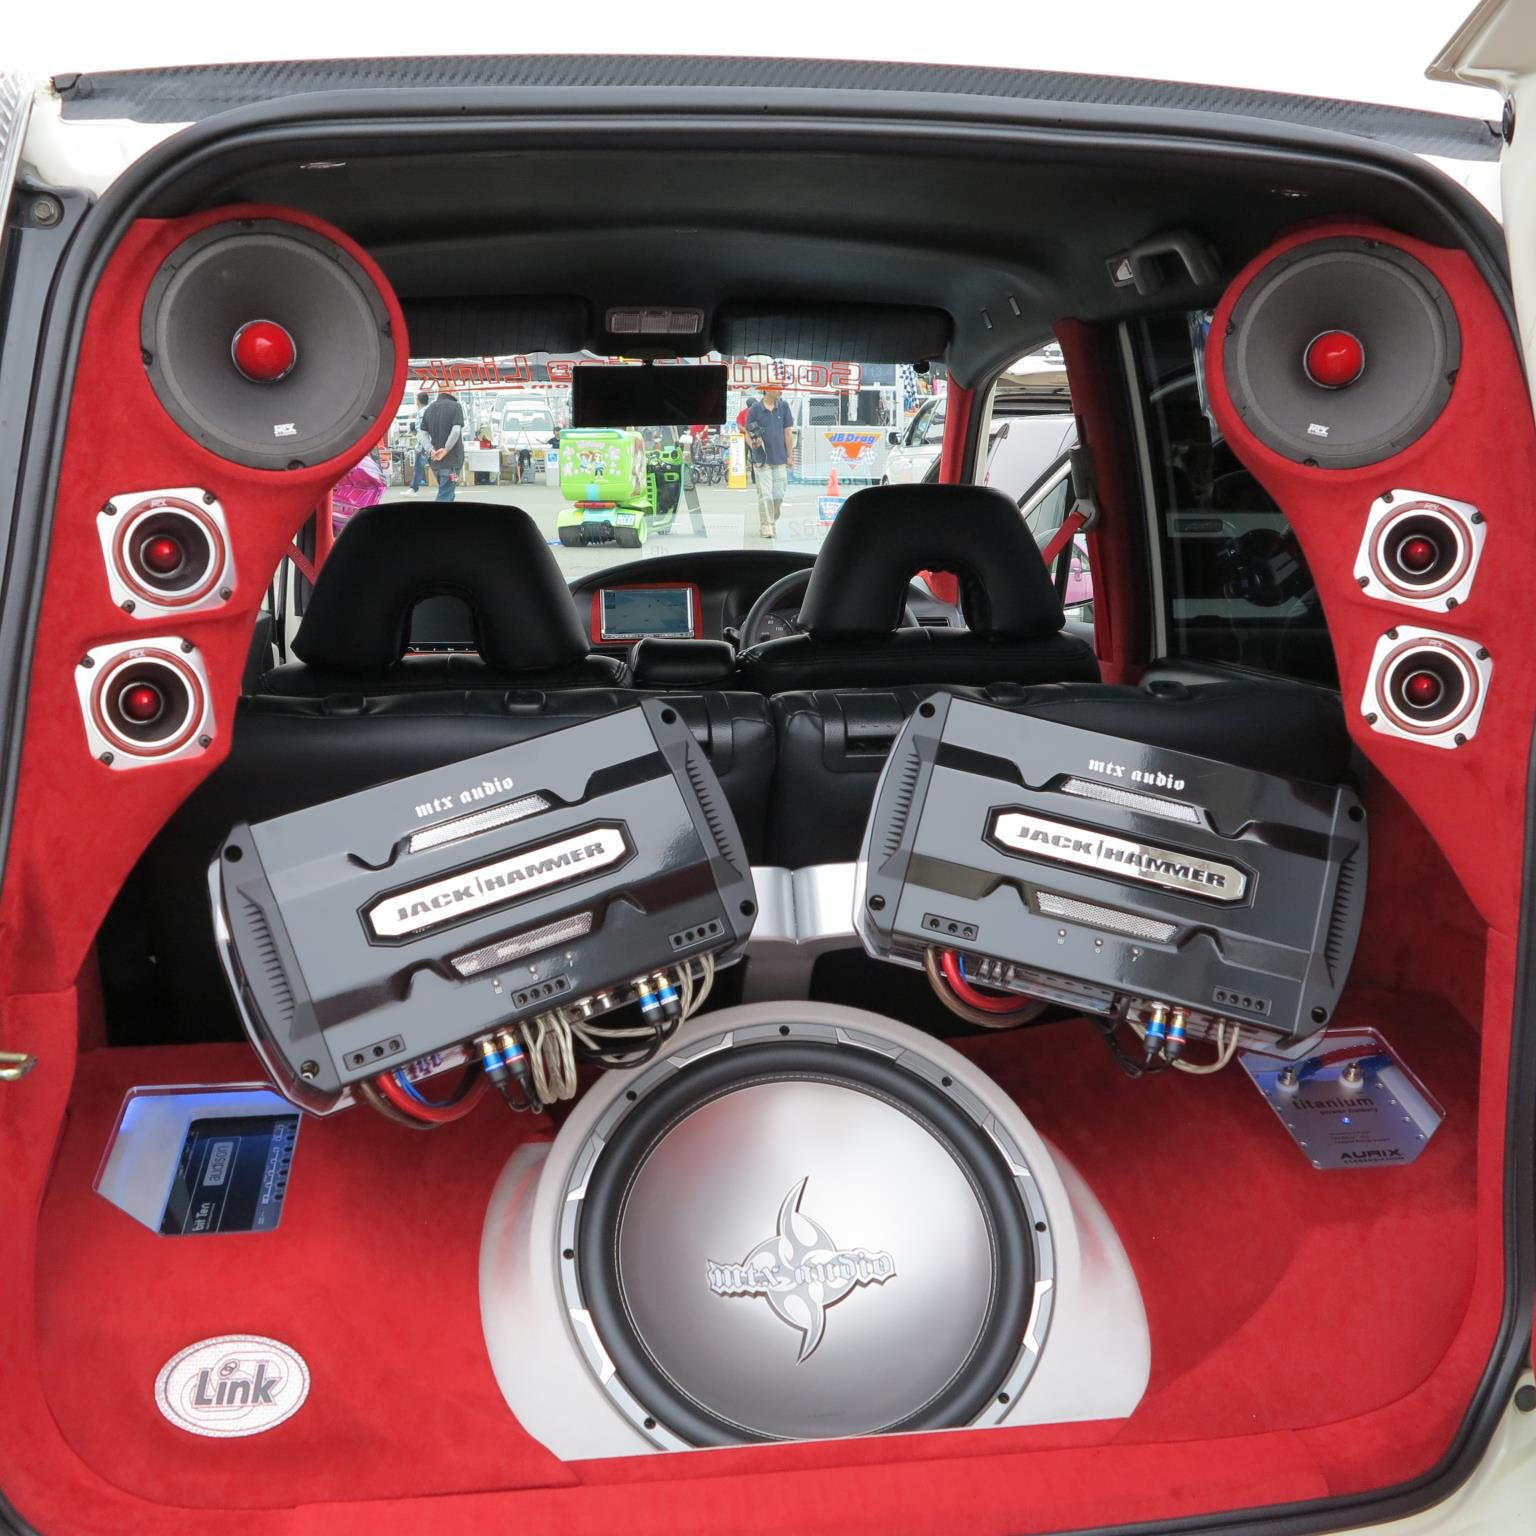 JackHammer series amps and subwoofer with RoadThunder Extreme speakers and  tweeters.